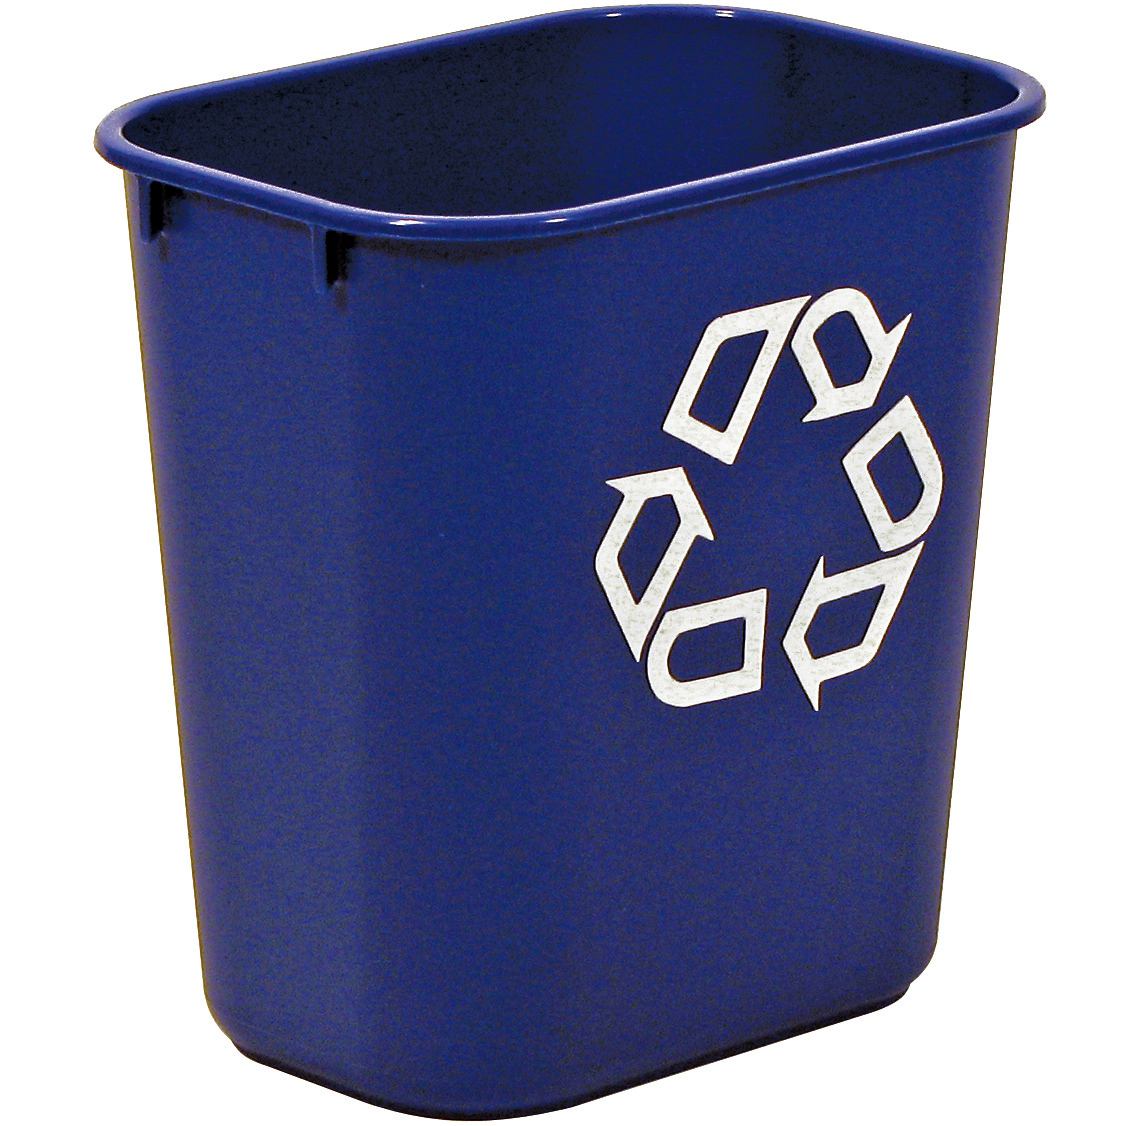 Recycling Bins Rubbermaid Waste Basket Polyethylene Rectangular 26.6 Litres 365x260x380mm Blue Ref FG295673BLUE